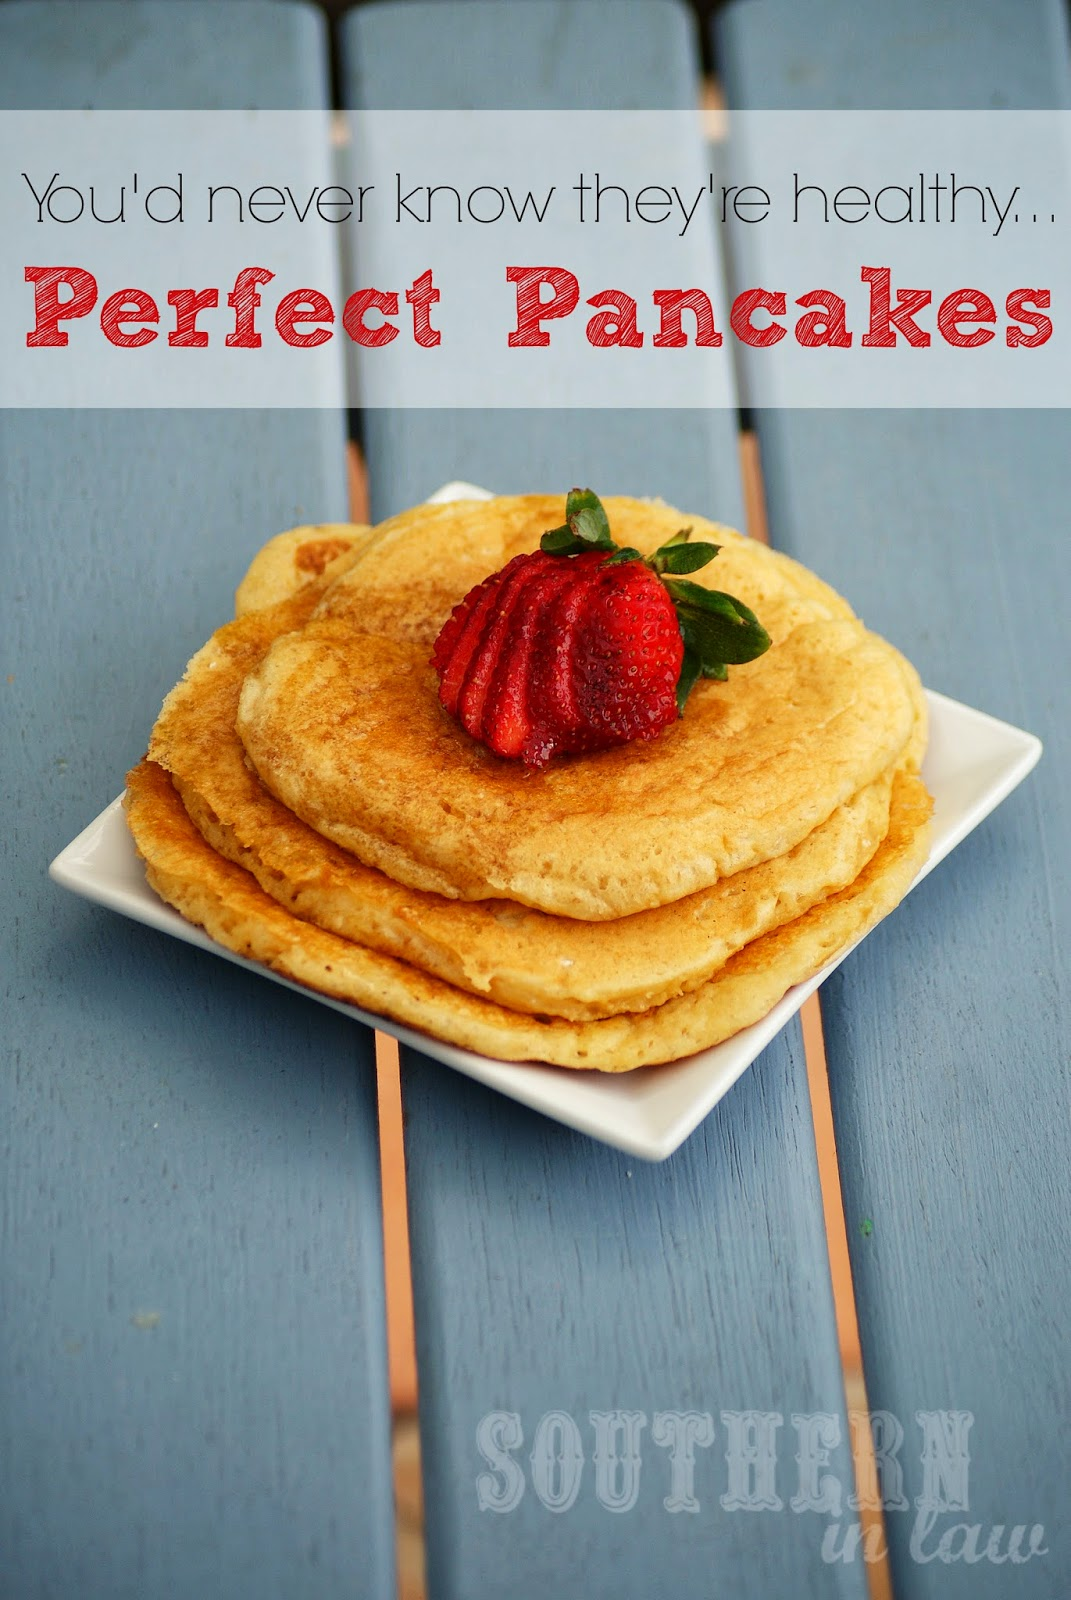 Southern In Law: Recipe: Perfect Pancakes (Better than IHOP!)